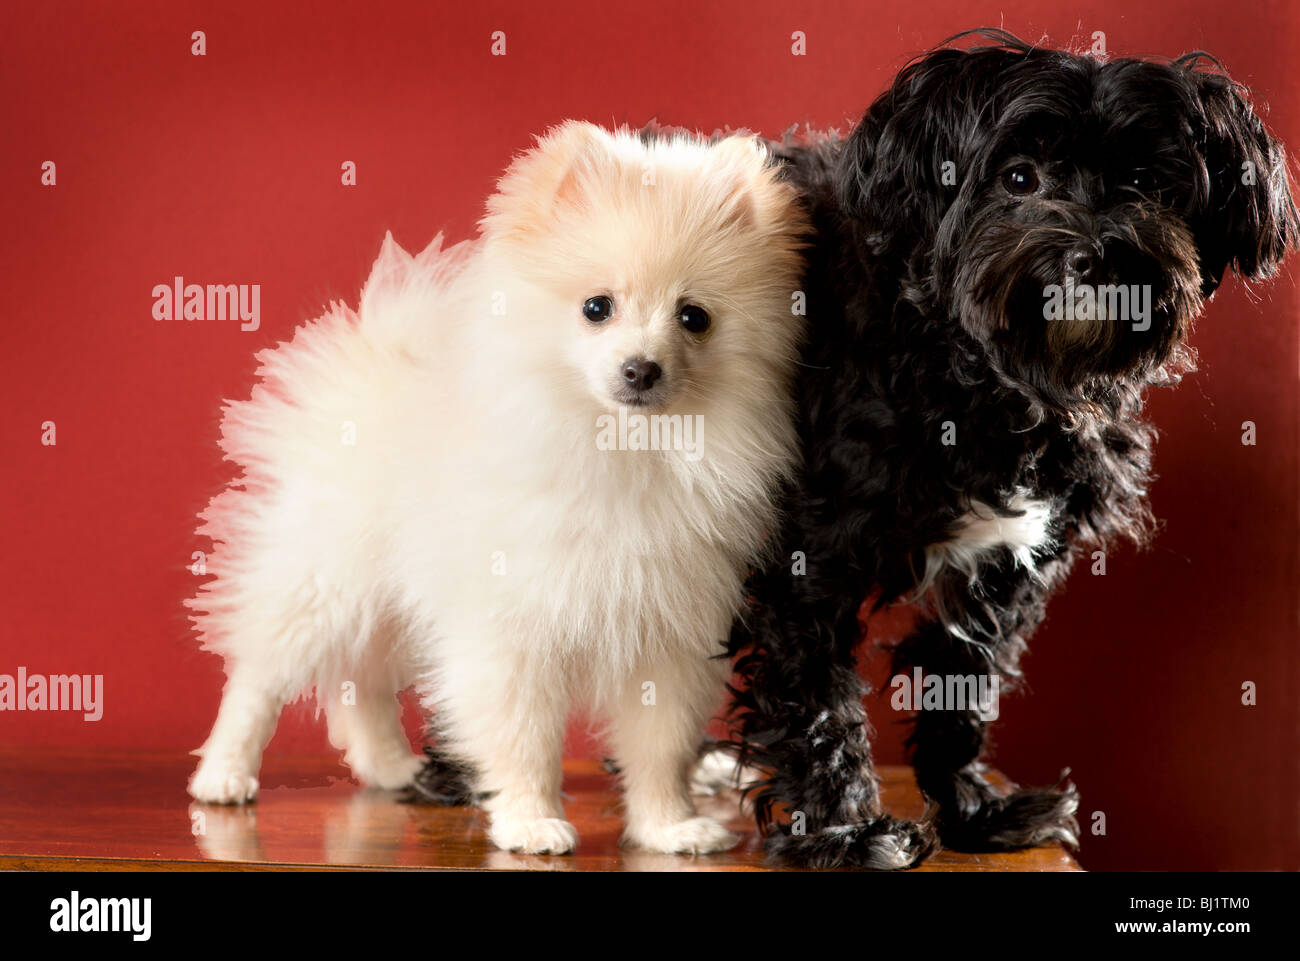 White pomeranian puppy standing next to a black and white maltese yorkie mix dog. - Stock Image